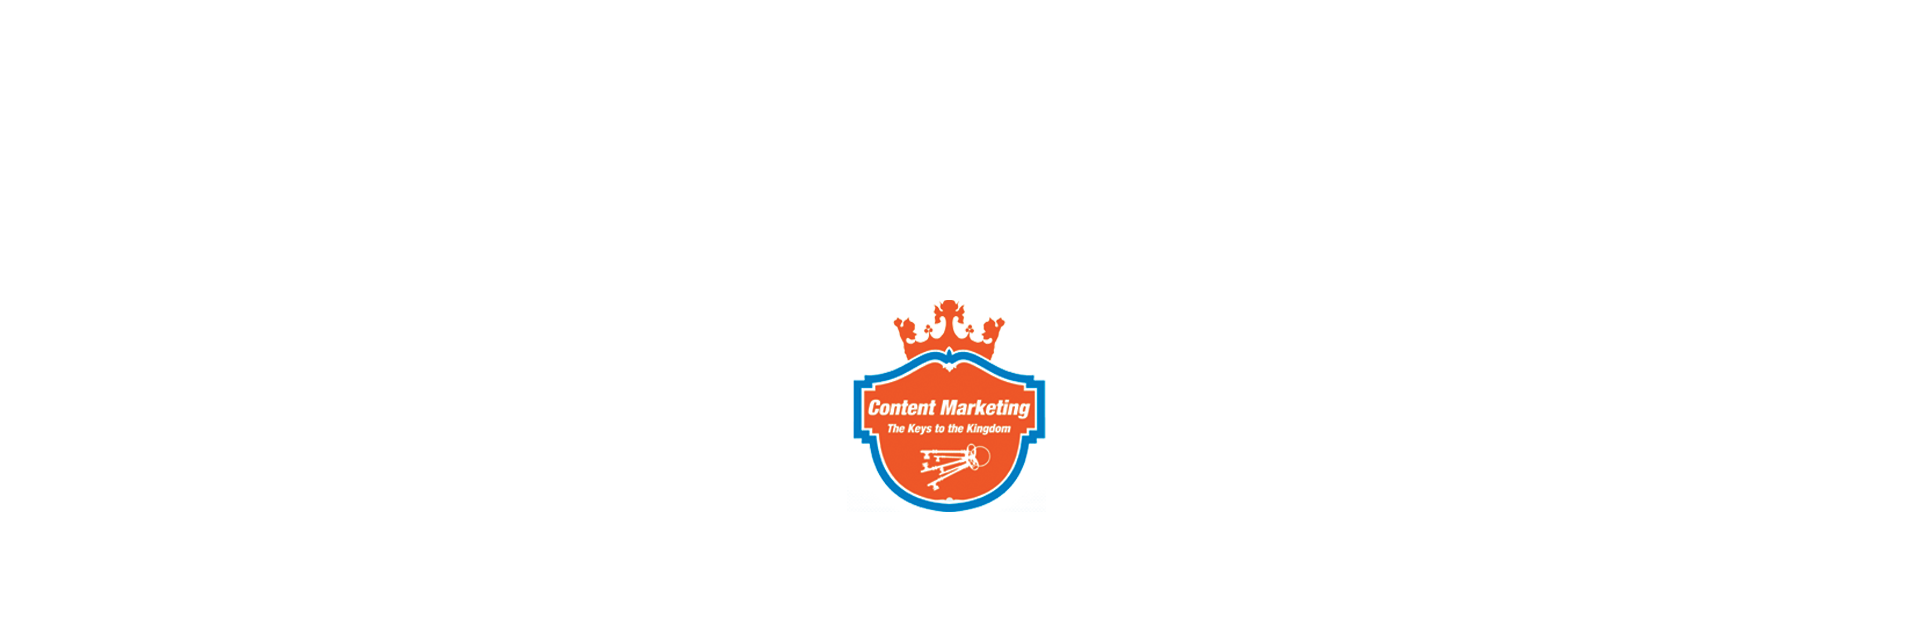 Content-Marketing-Strategies-Free-Whitepaper